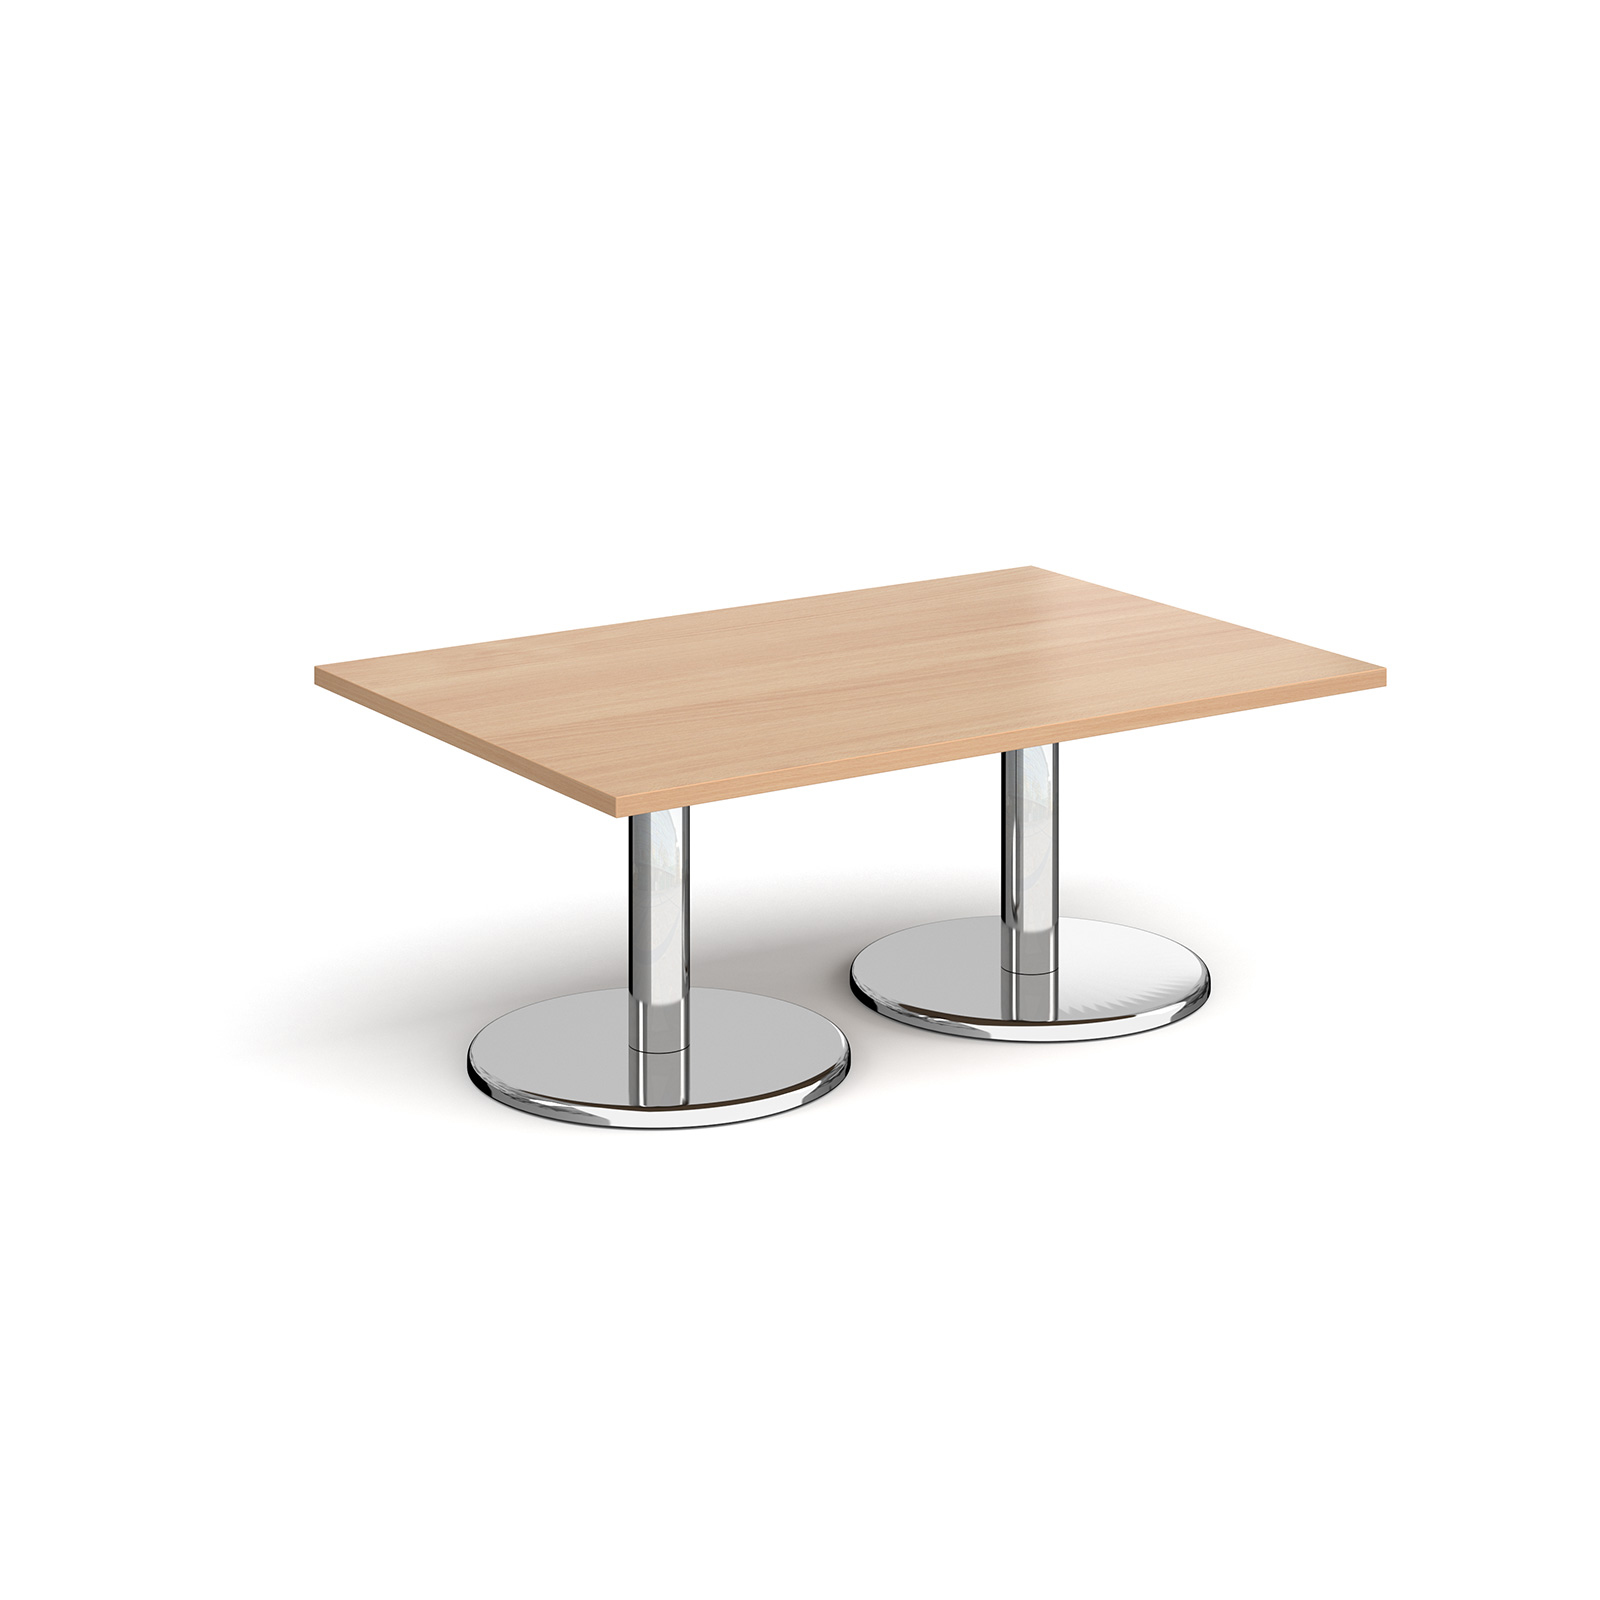 Pisa rectangular coffee table with round bases